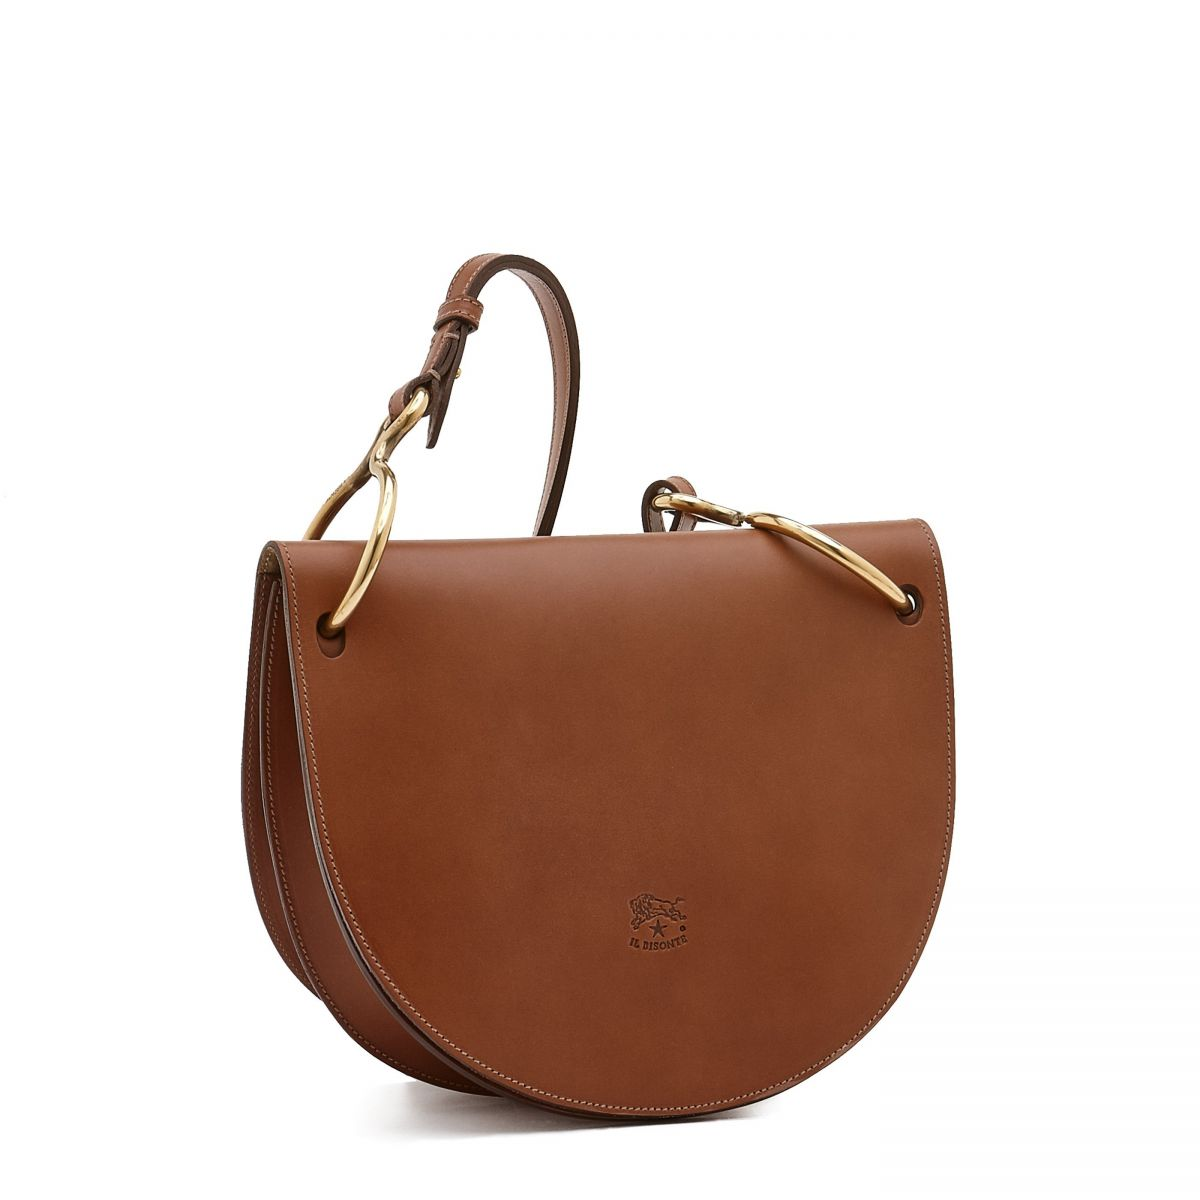 Women's Crossbody Bag Consuelo in Cowhide Leather BCR193 color Chocolate | Details